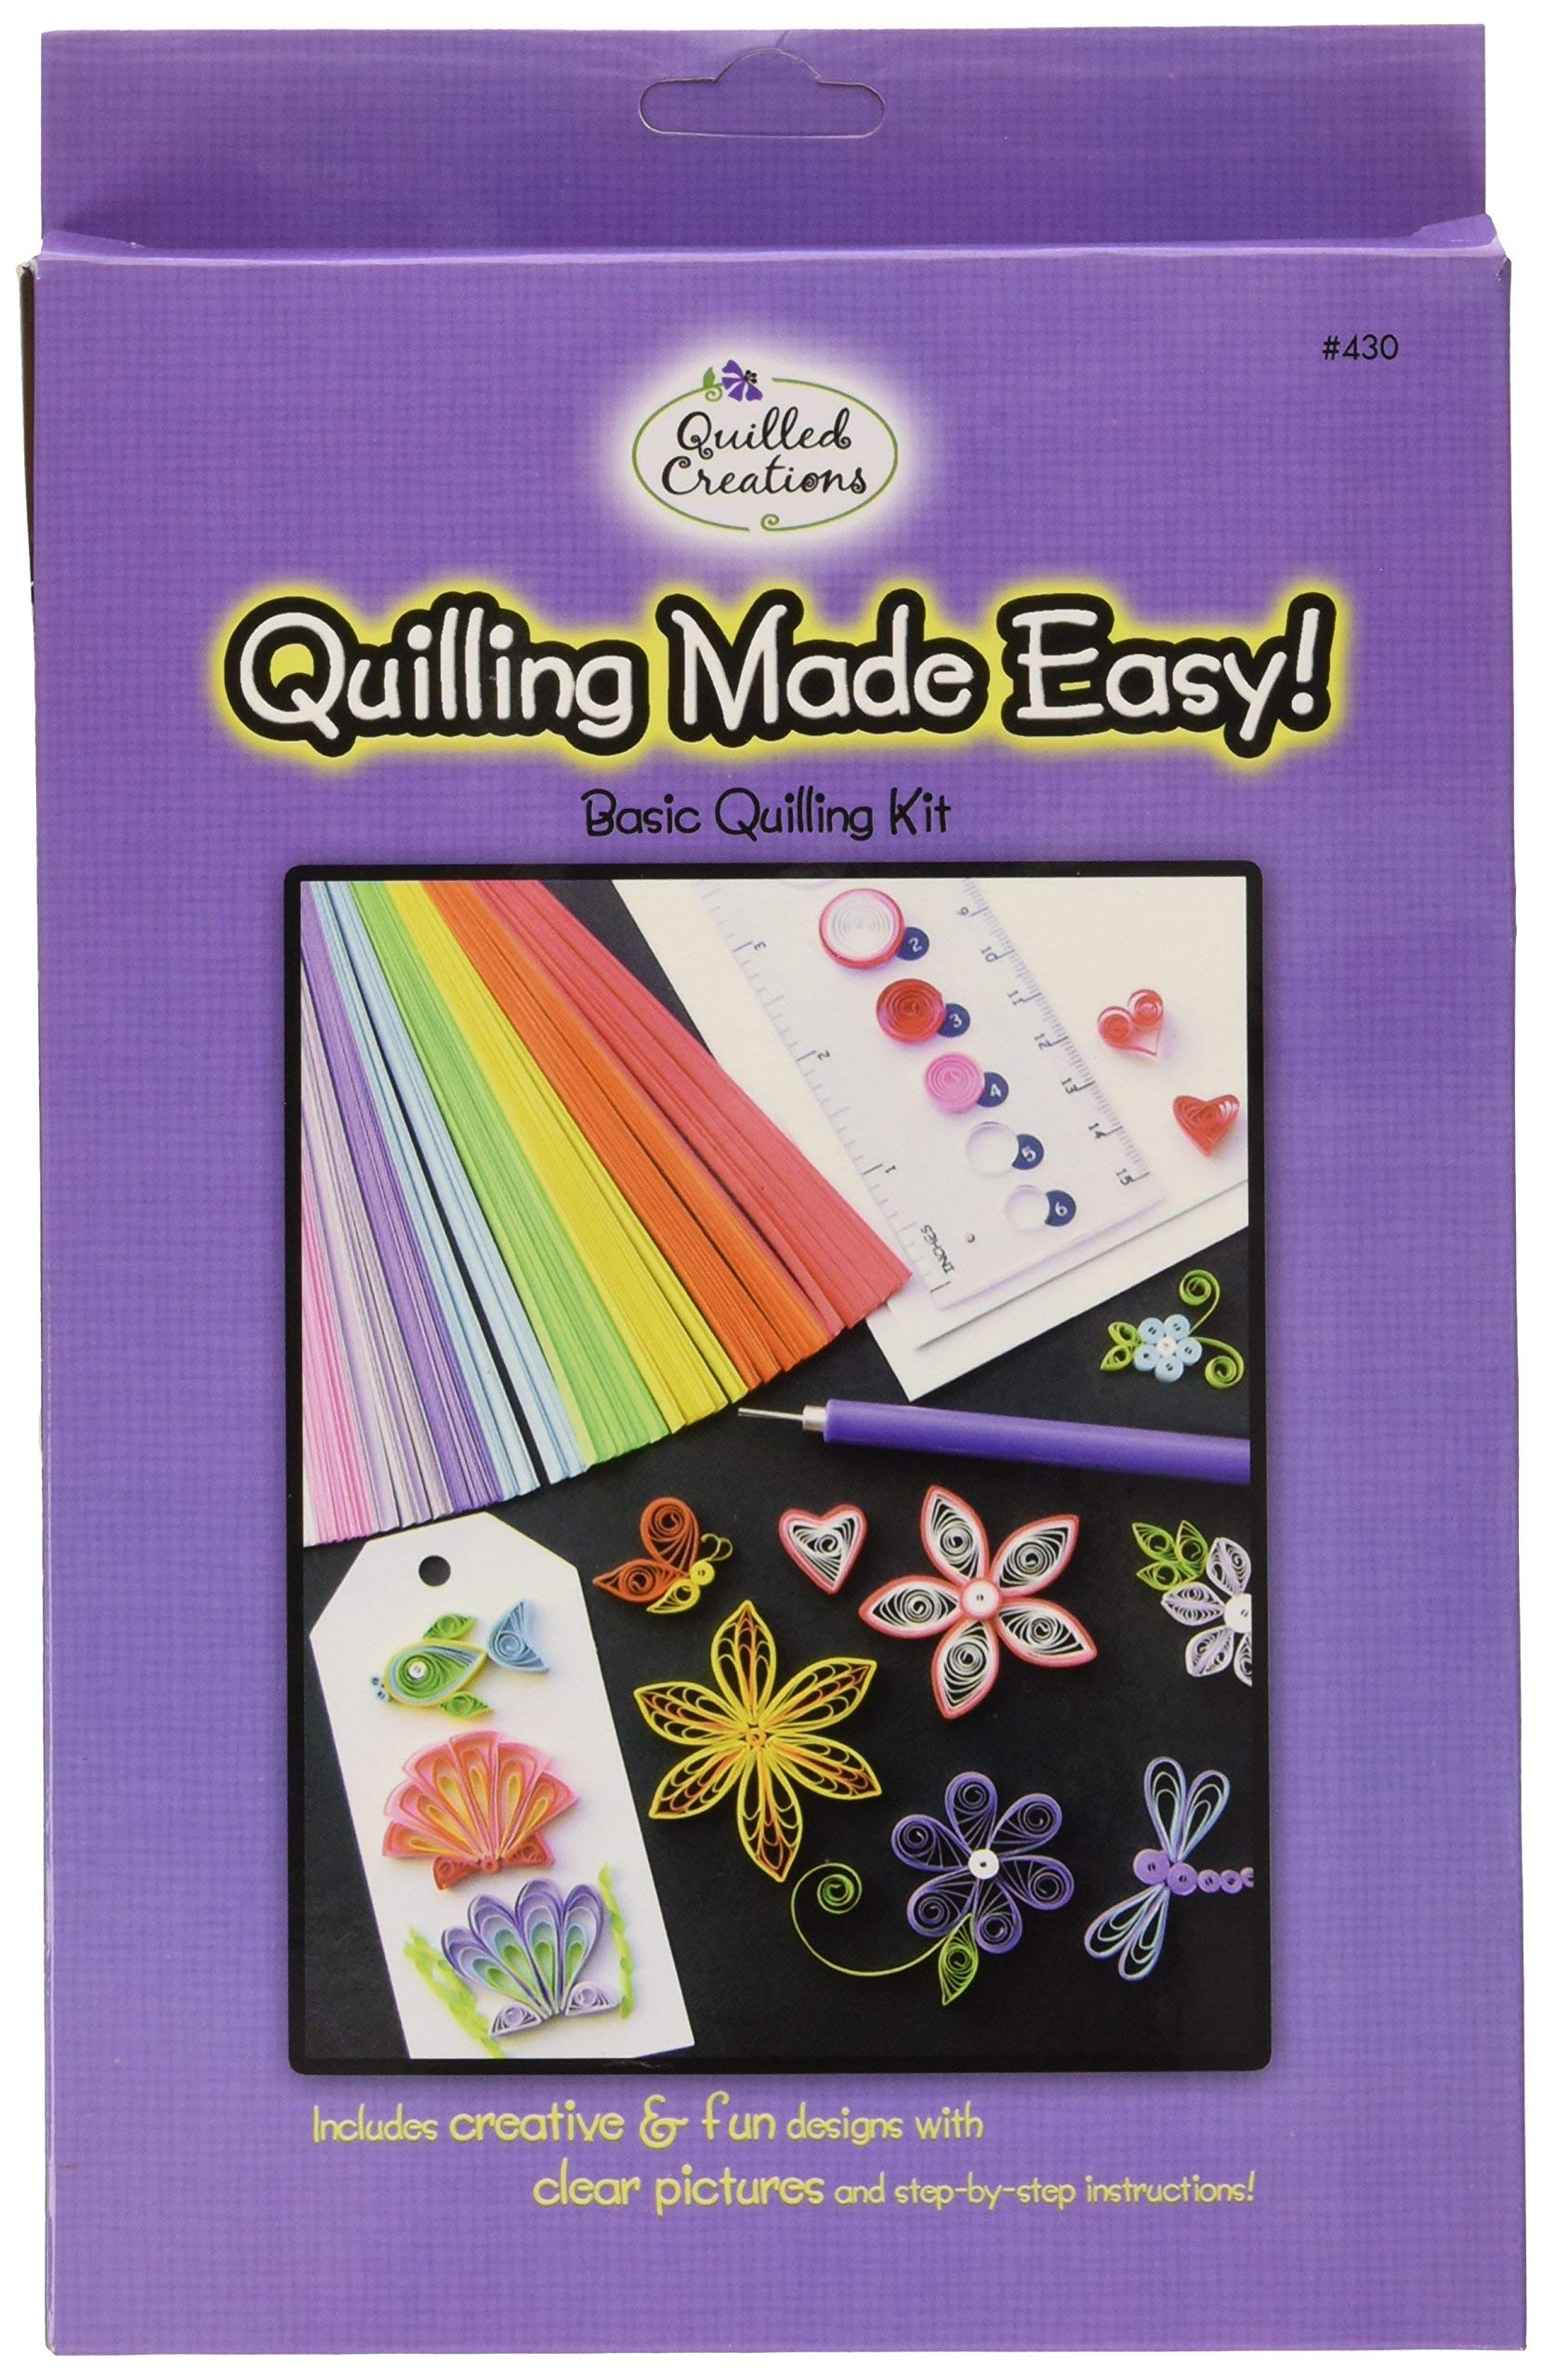 Quilled Creations Quilling Kit by Quilled Creations